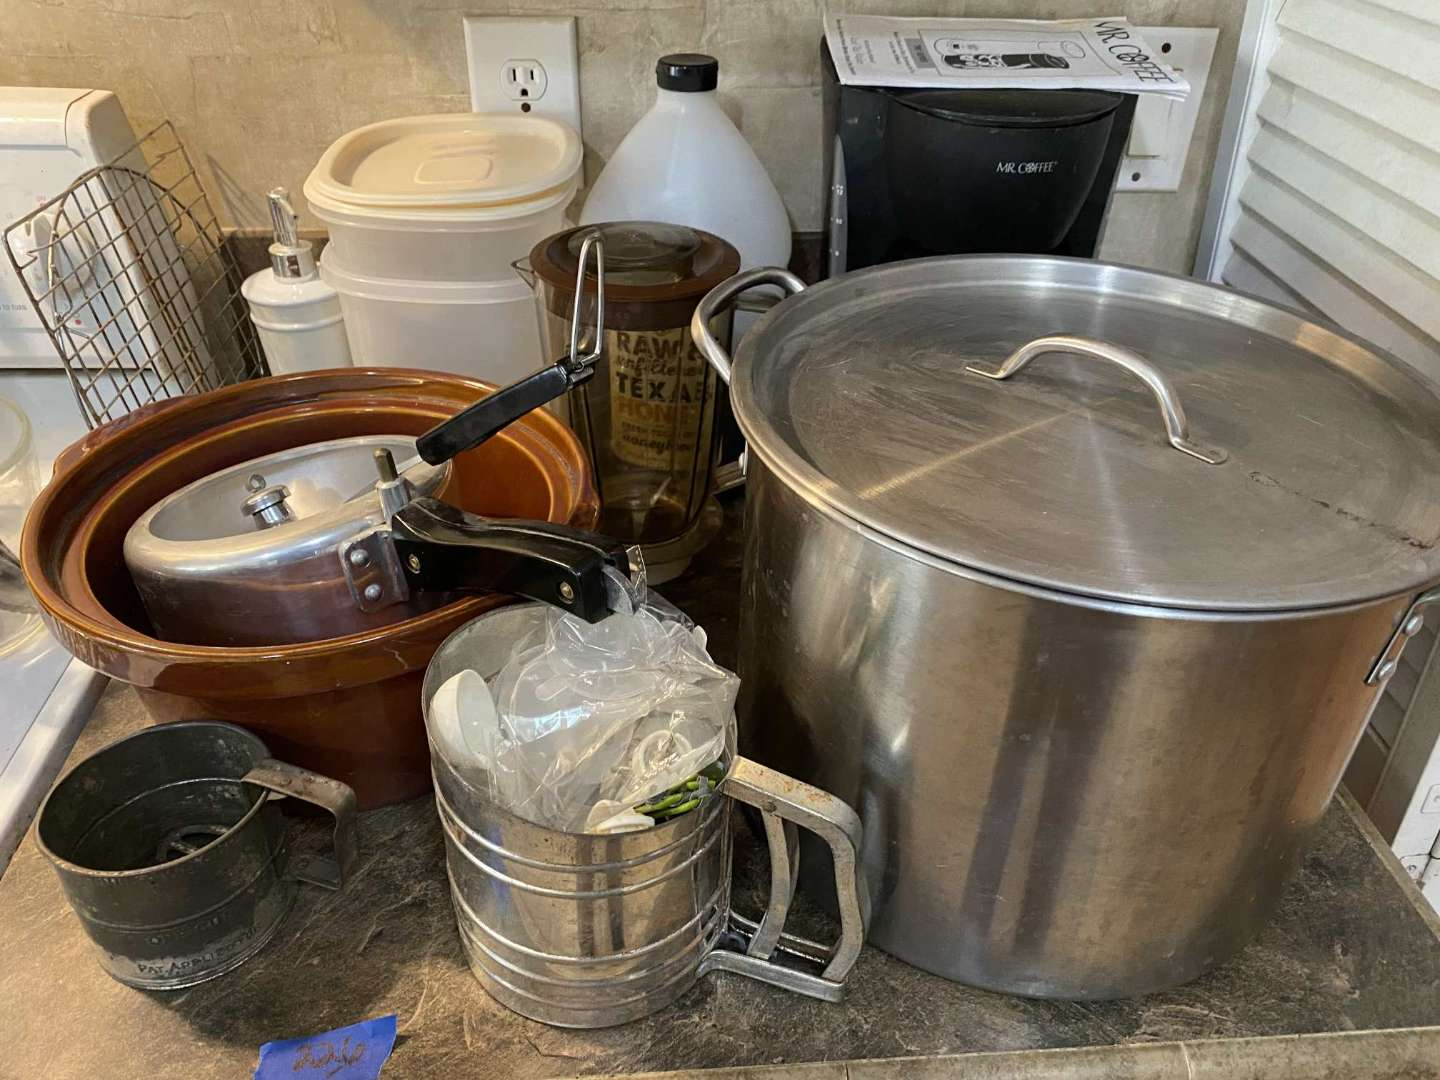 Lot # 226 Contents of right stove countertop